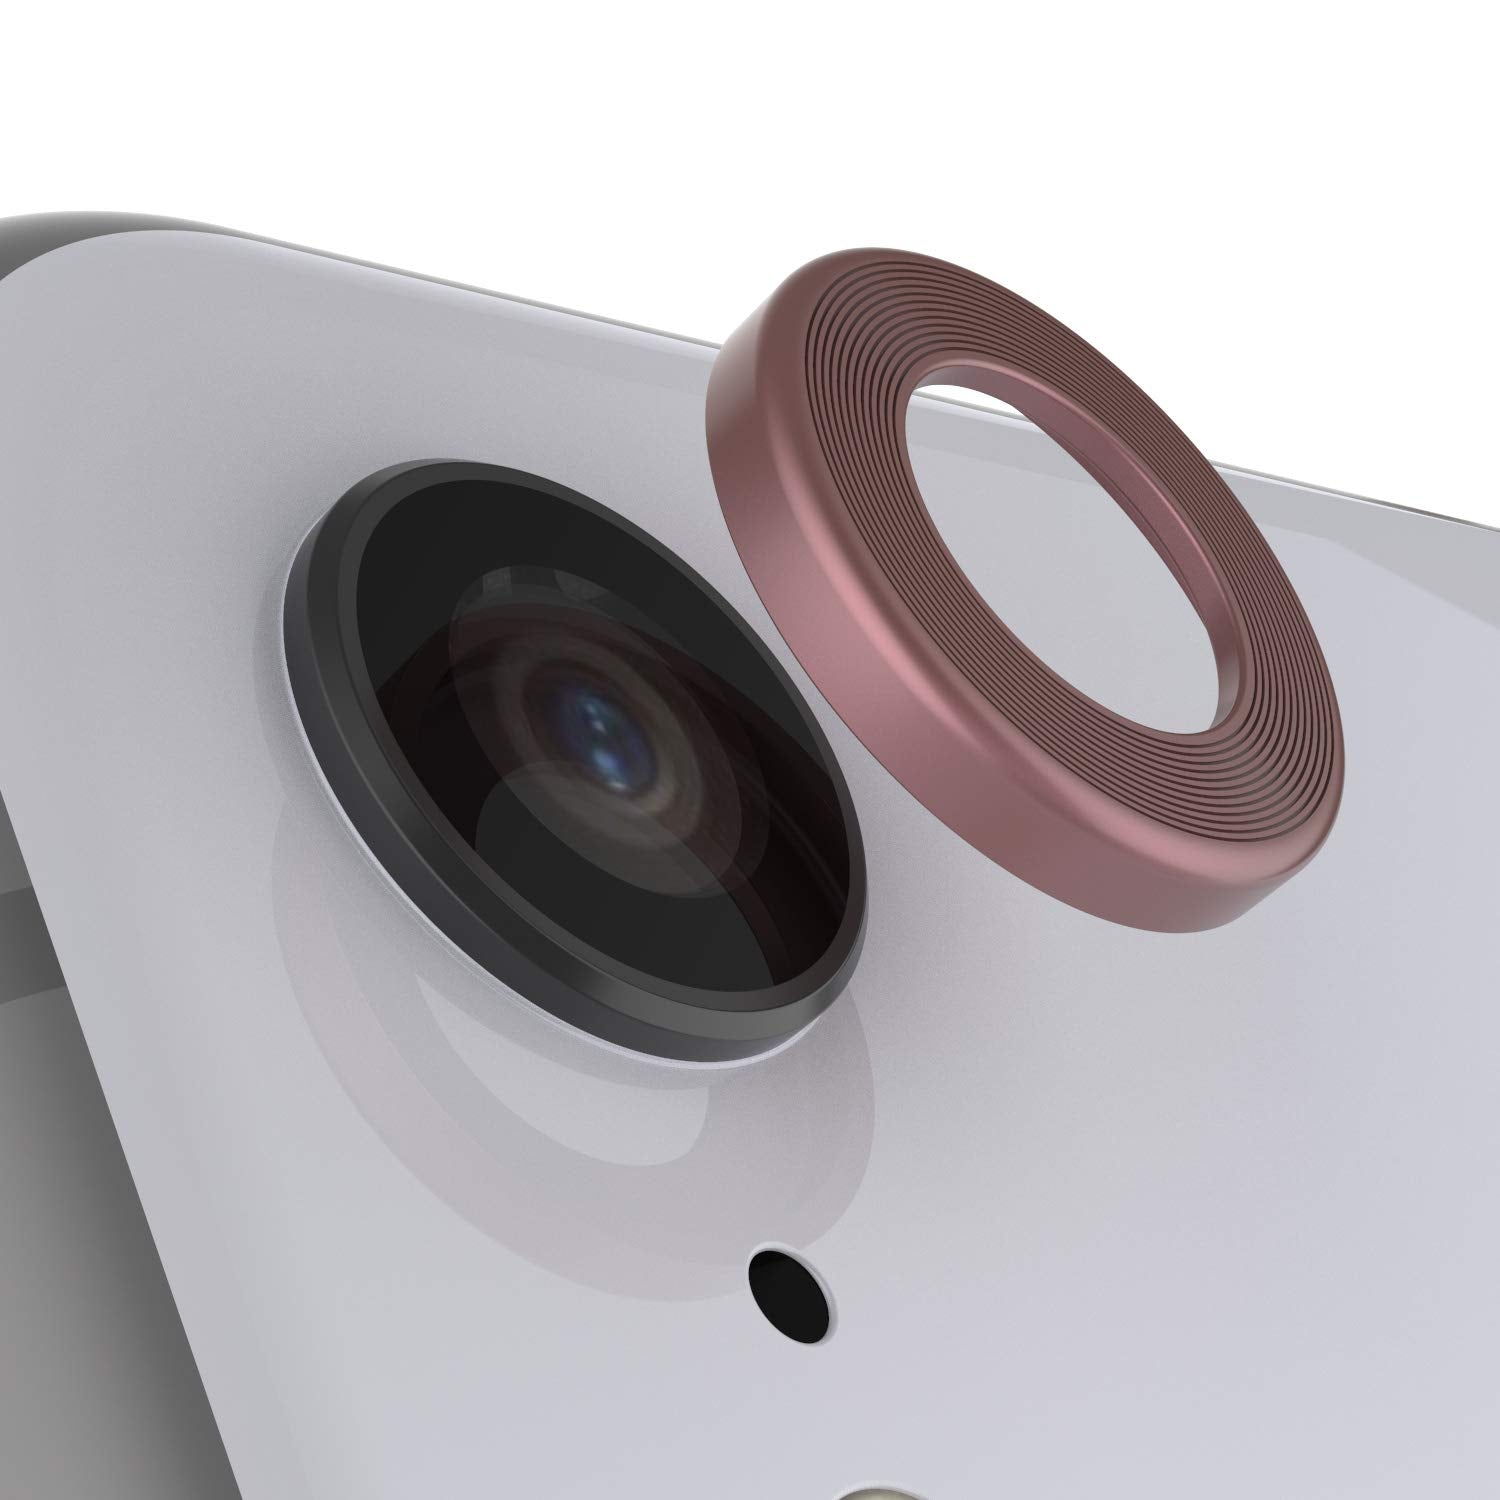 Punkcase iPhone XR Camera Protector Ring [Rose-Gold]